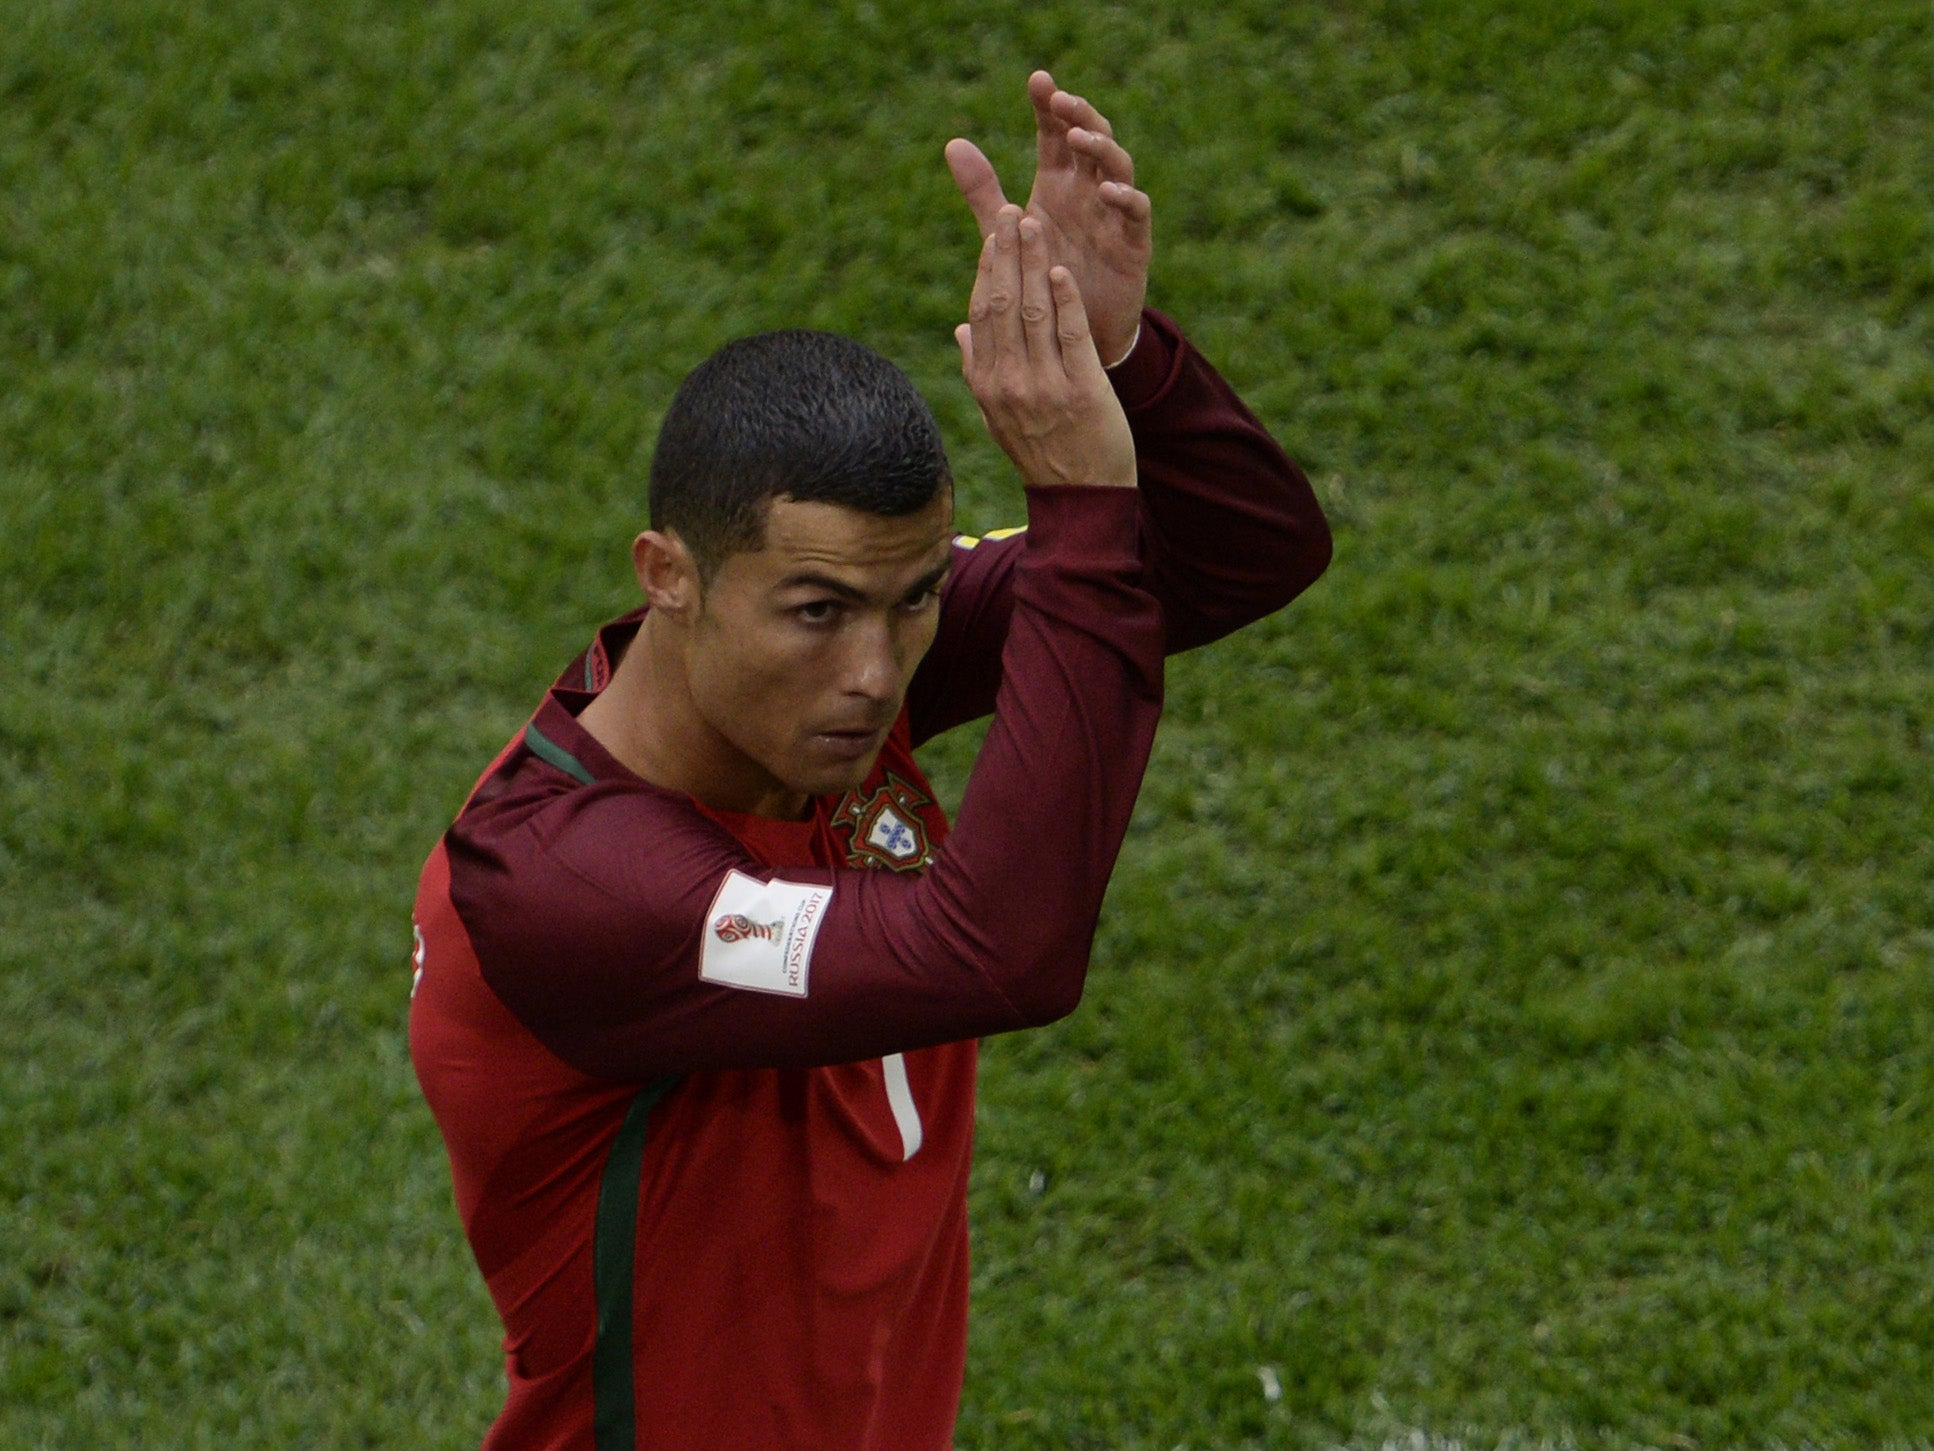 Cristiano Ronaldo confirms he's had twins and leaves Portugal squad to be with them